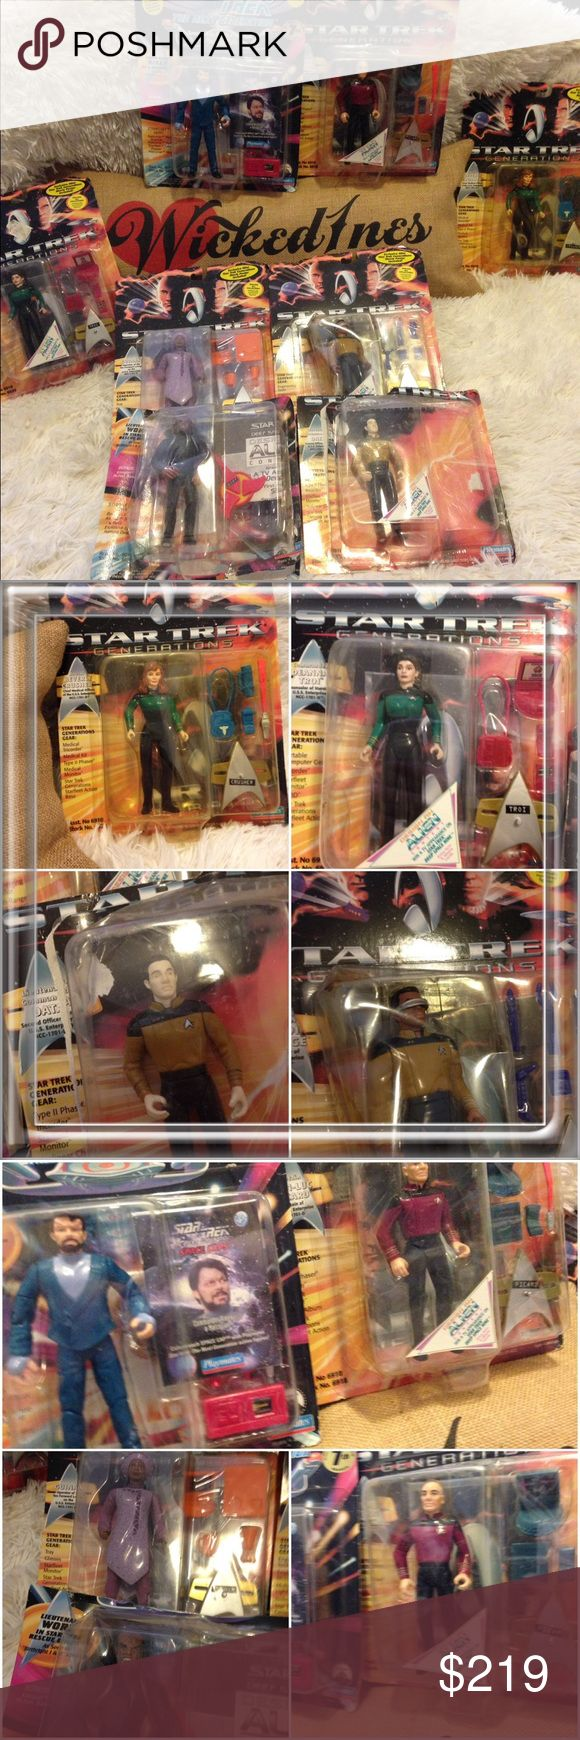 Rare Star Trek Vintage Toy Collection Please see photos for description. These are rare and from the early 90's. Star Trek Other